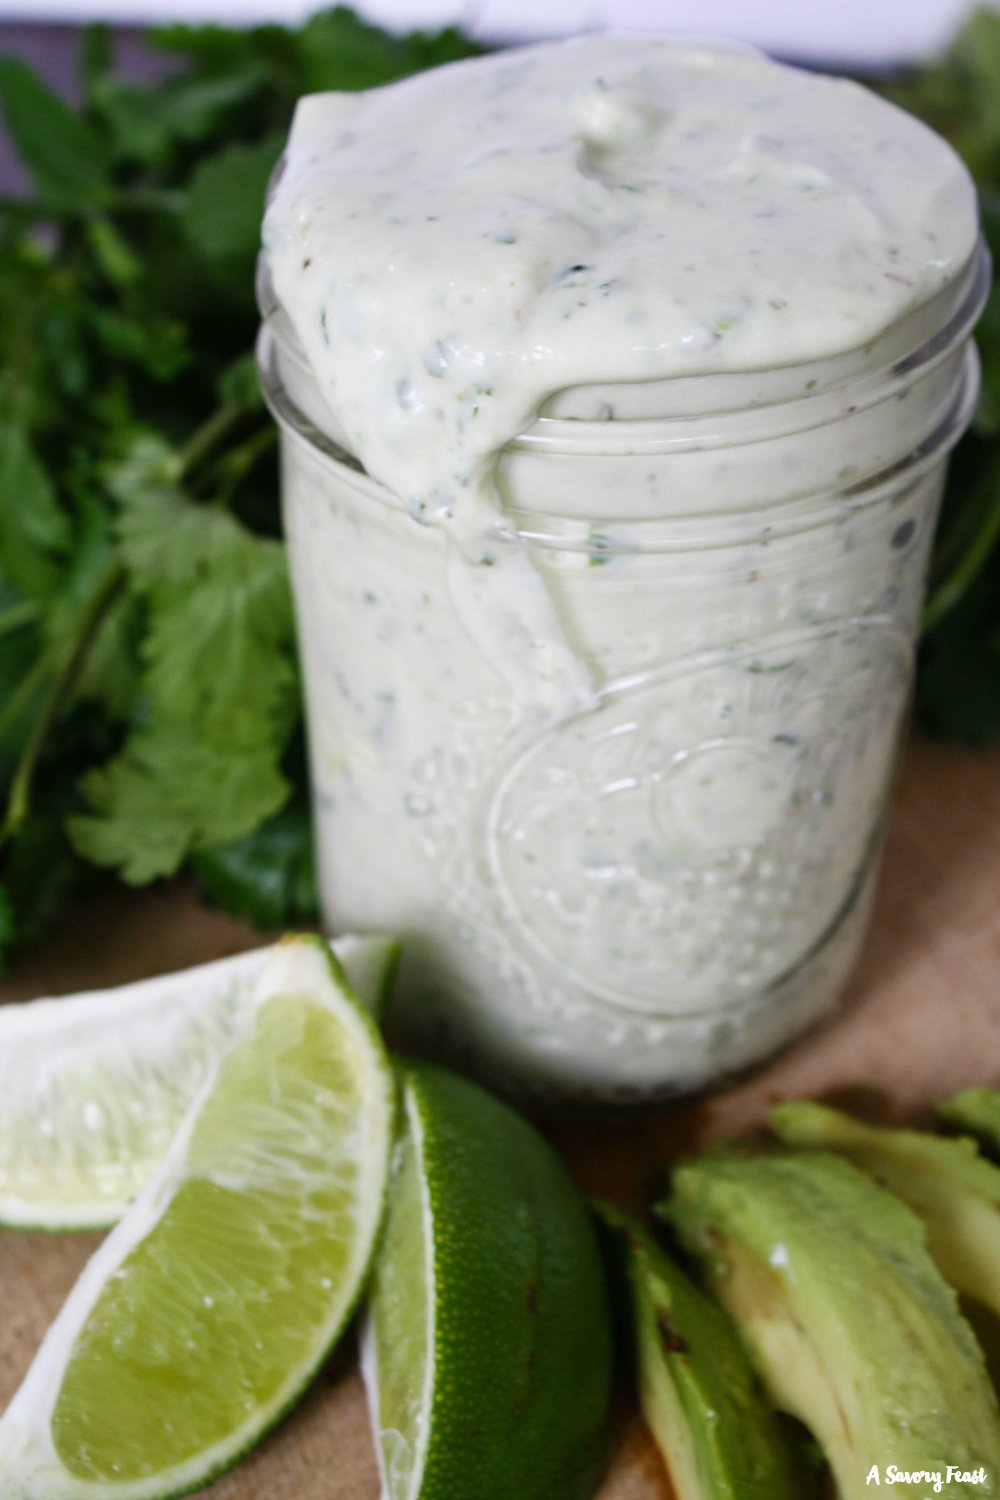 If you haven't tried making your own salad dressings, you're missing out! This Avocado Ranch Salad Dressing is so simple to make and you probably have most of the ingredients in the house. Use it on your favorite salad or as a dip for veggies!